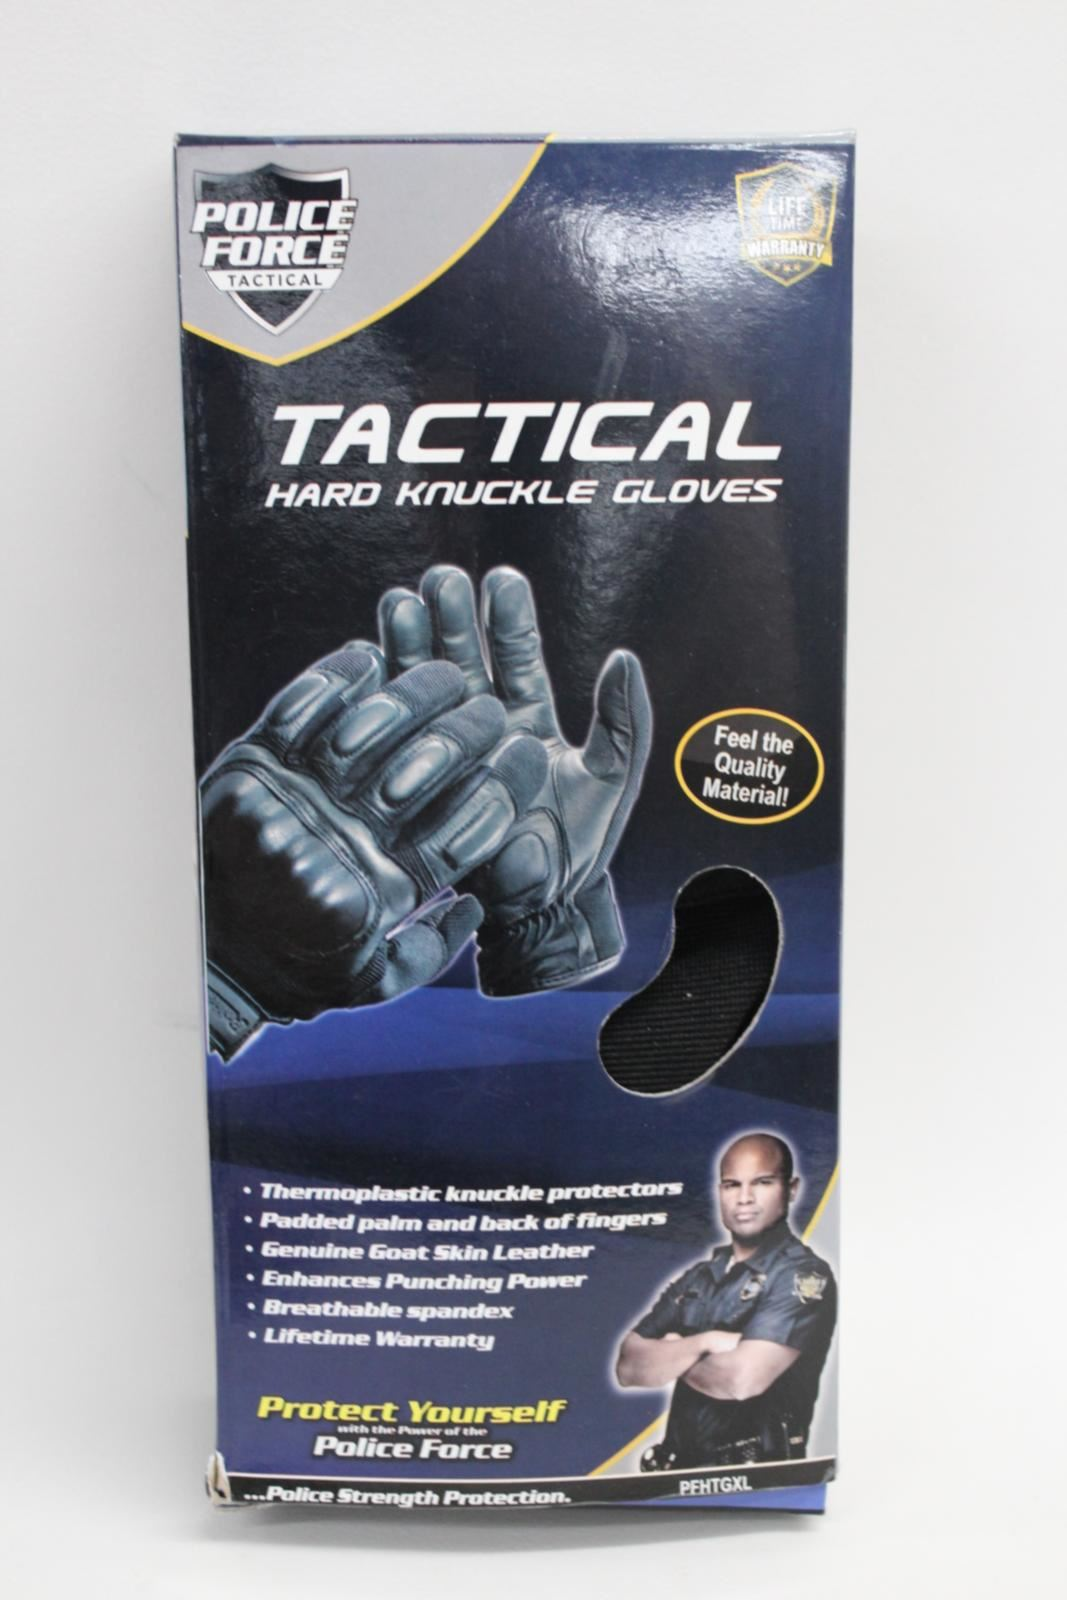 POLICE-FORCE-TACTICAL-Leather-Palm-Hard-Knuckle-Gloves-Black-Bikers-XL-NEW